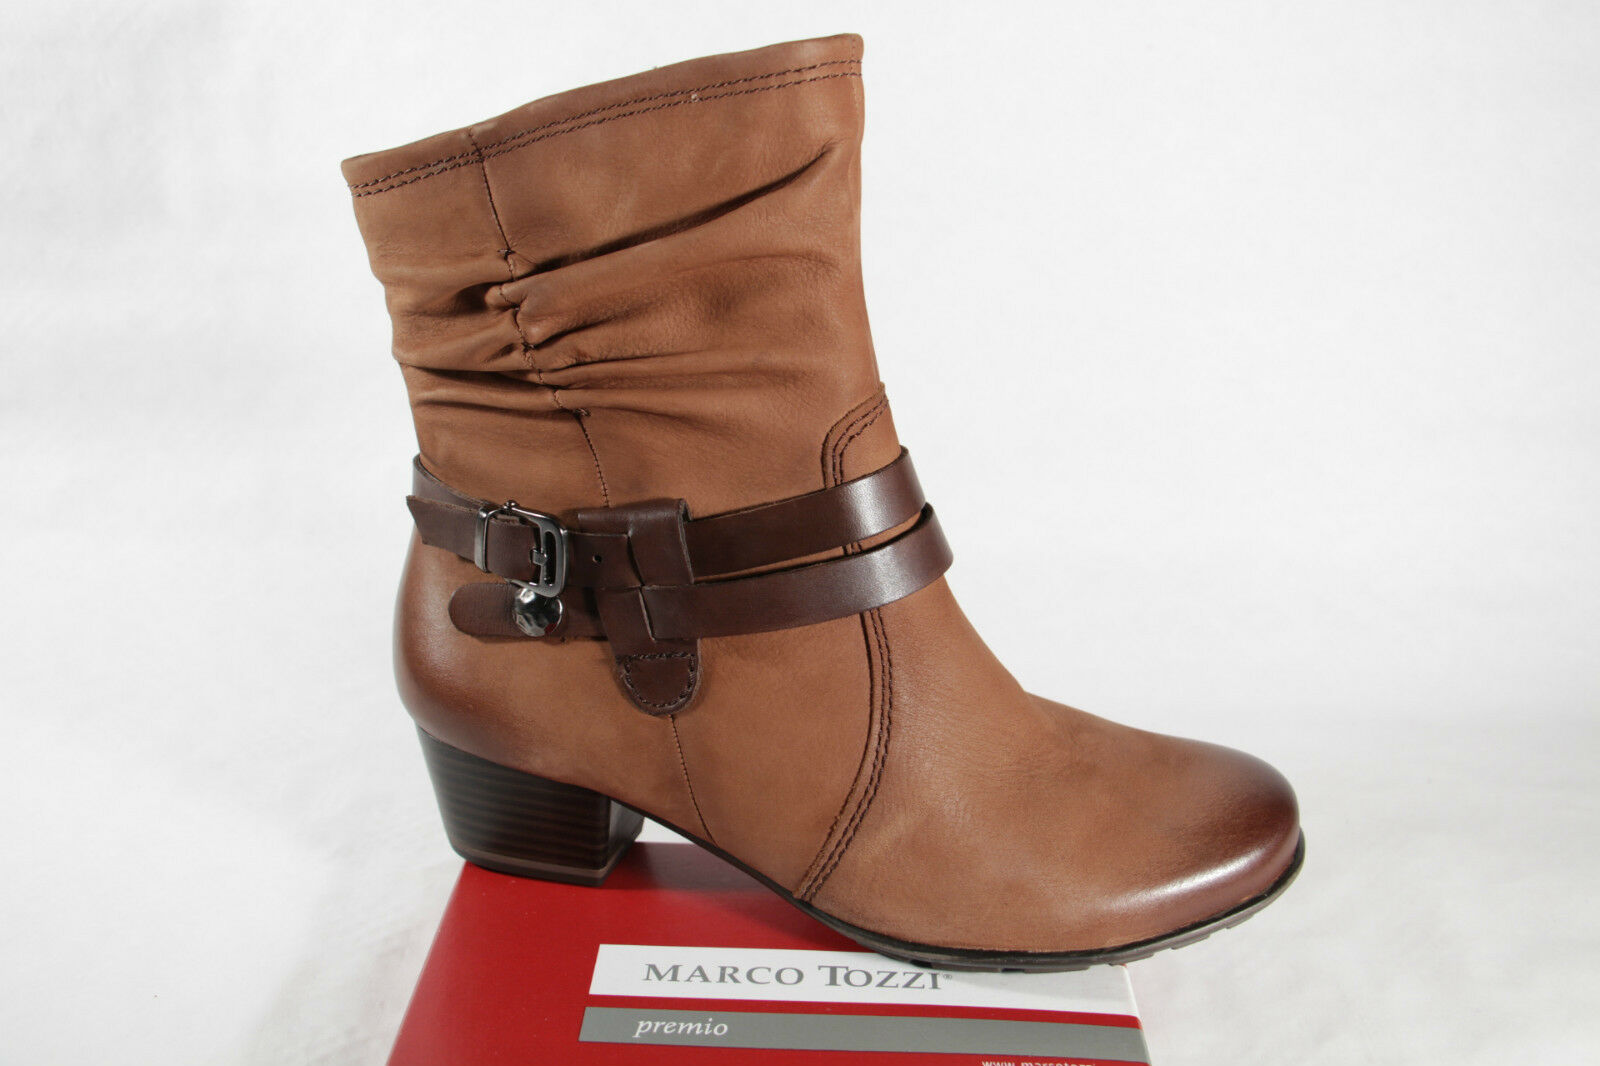 MARCO TOZZI Boots, Ankle Boots, Leather, Brown, Padded, RV 25002 NEW